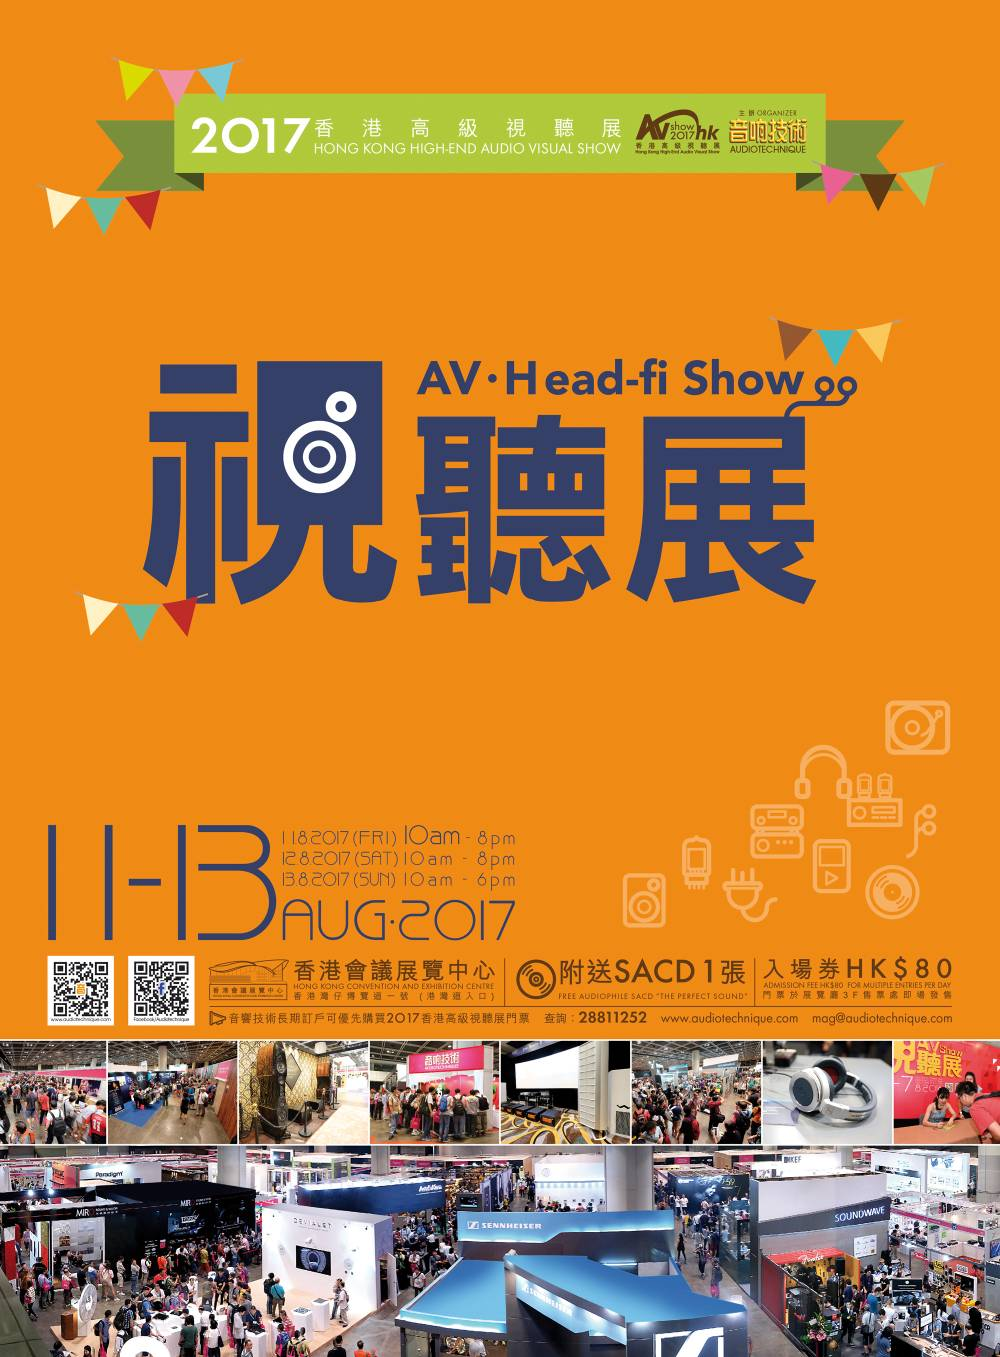 Hong Kong High-End Audio Visual Show 2017 - News - Audia